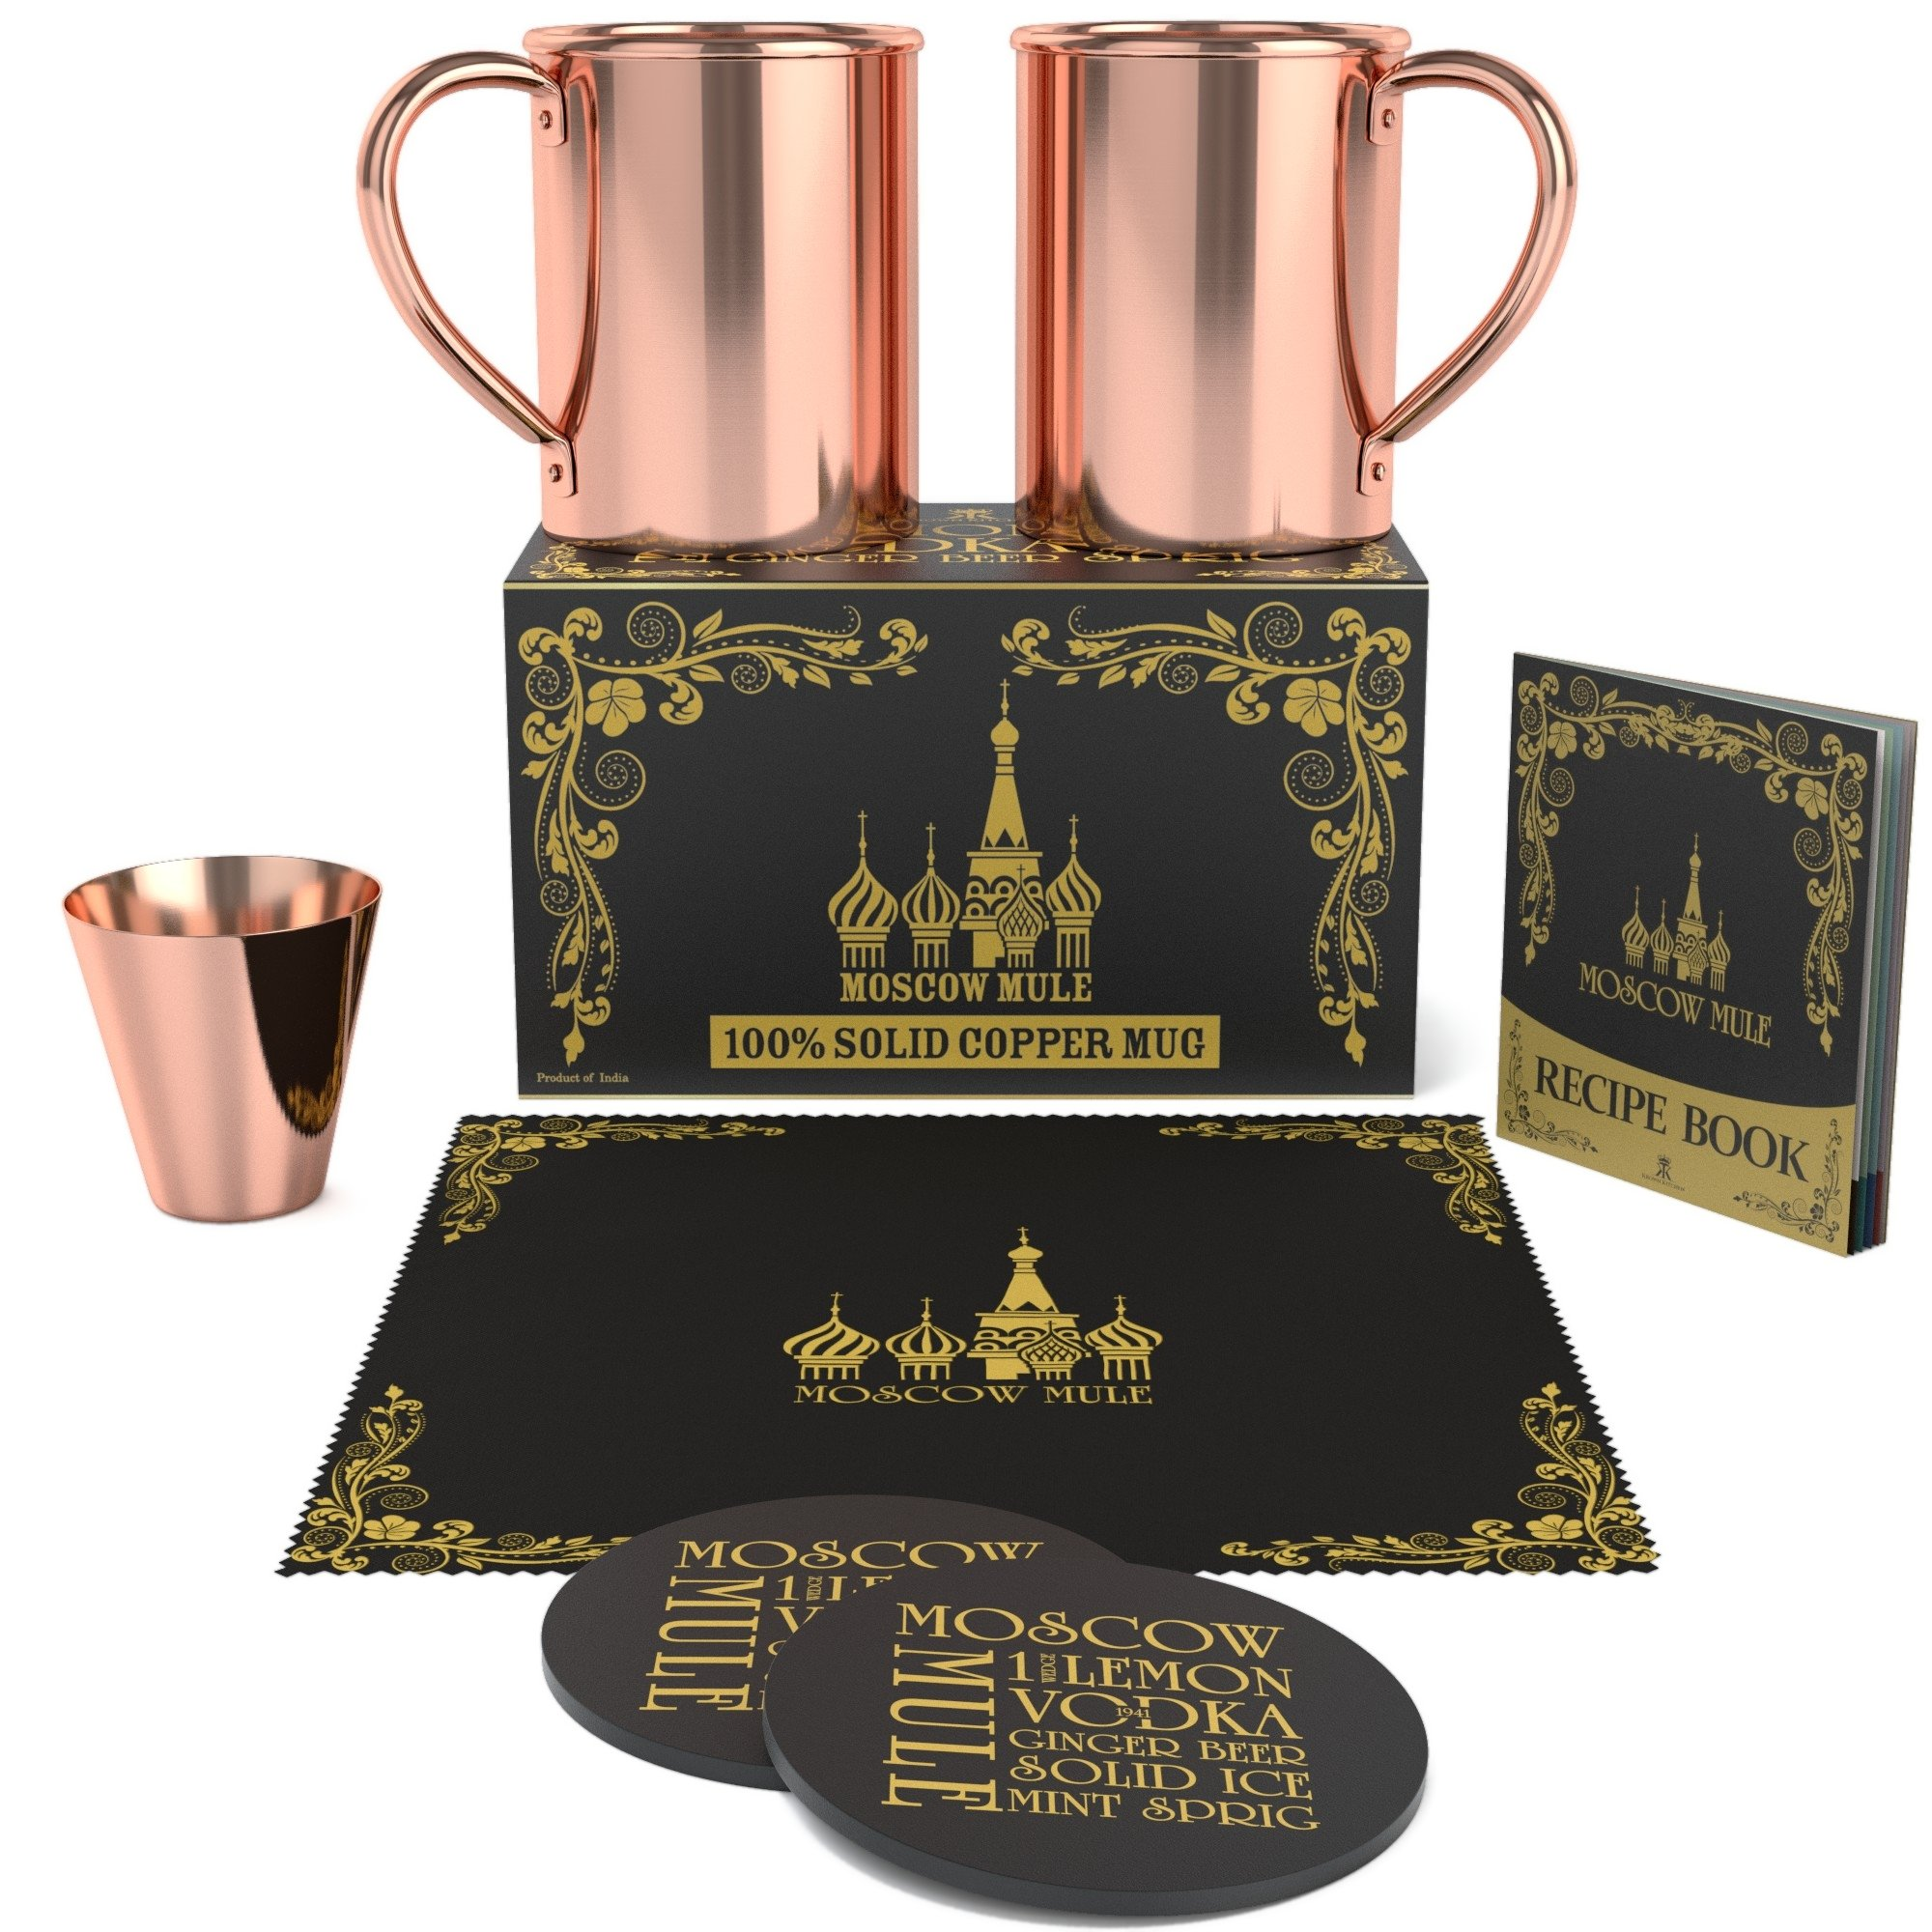 Krown Kitchen - 100% solid moscow mule copper mug (2) by Krown Kitchen (Image #6)